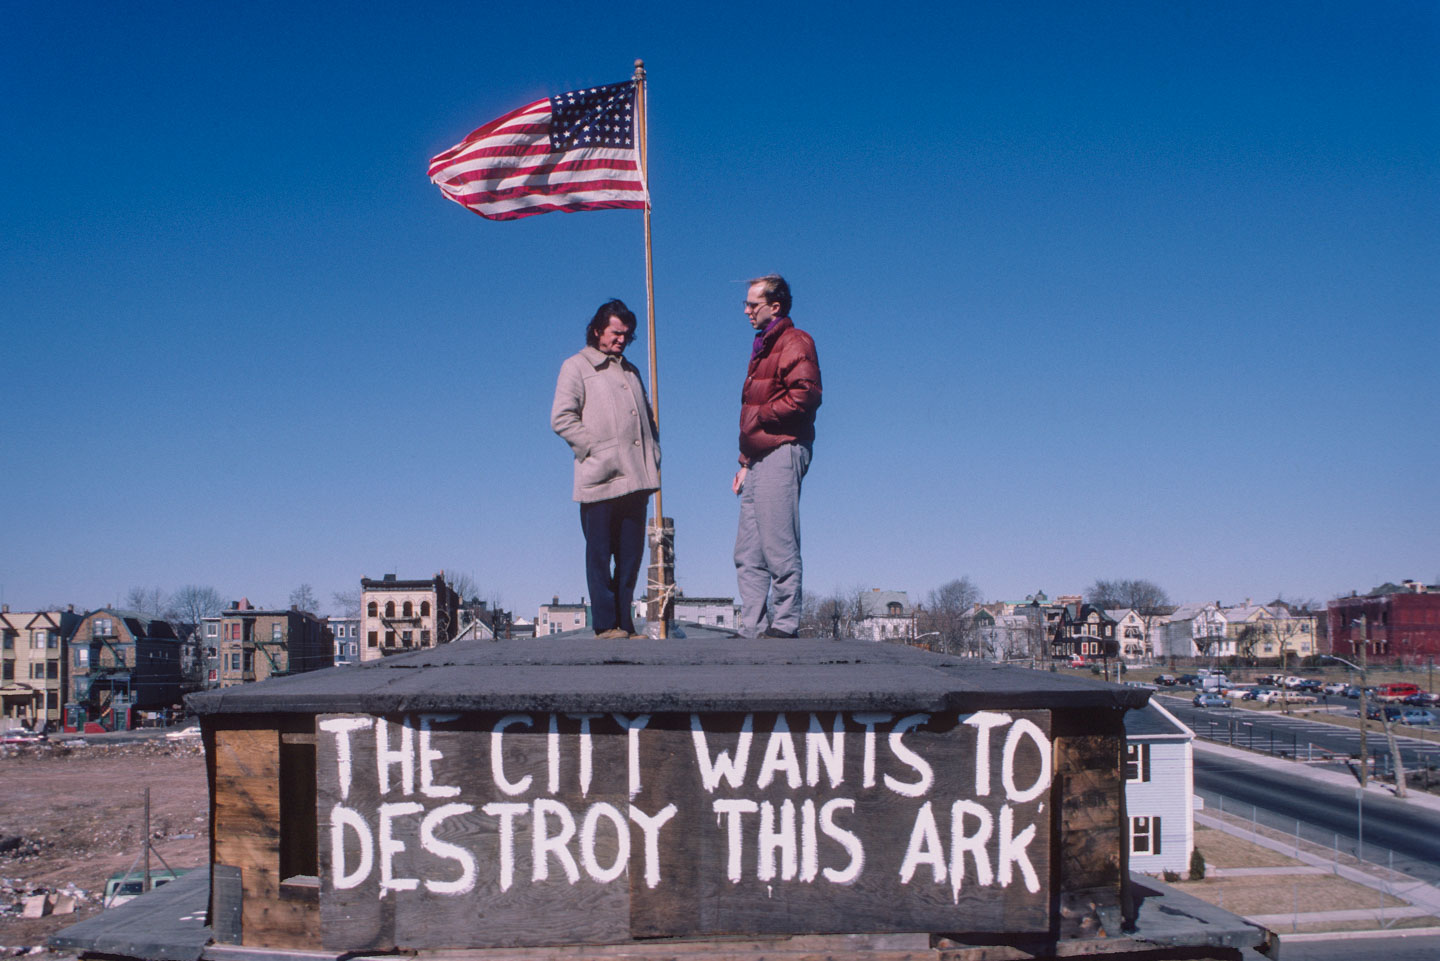 13-Kea speaking with Chip Brown of the Washington Post on the deck of the Ark, Bergen St. at 14th Ave., Newark, 1987_